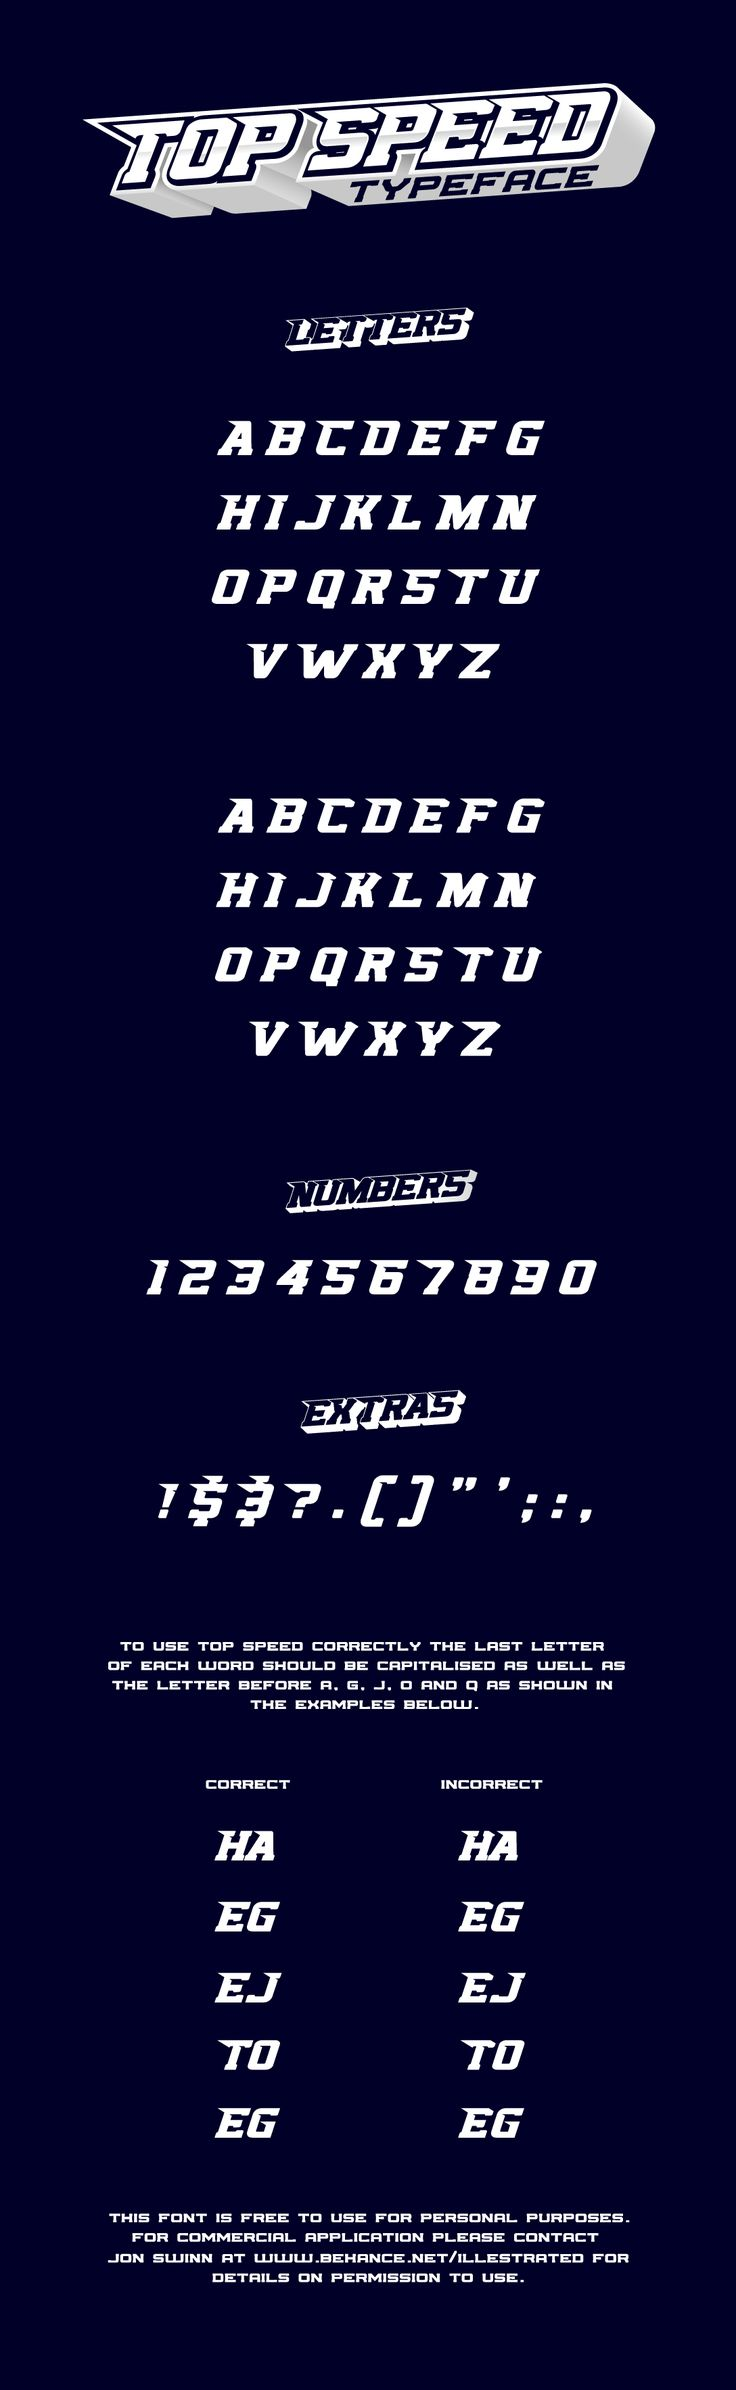 Topspeed free font is a sports themed display typeface